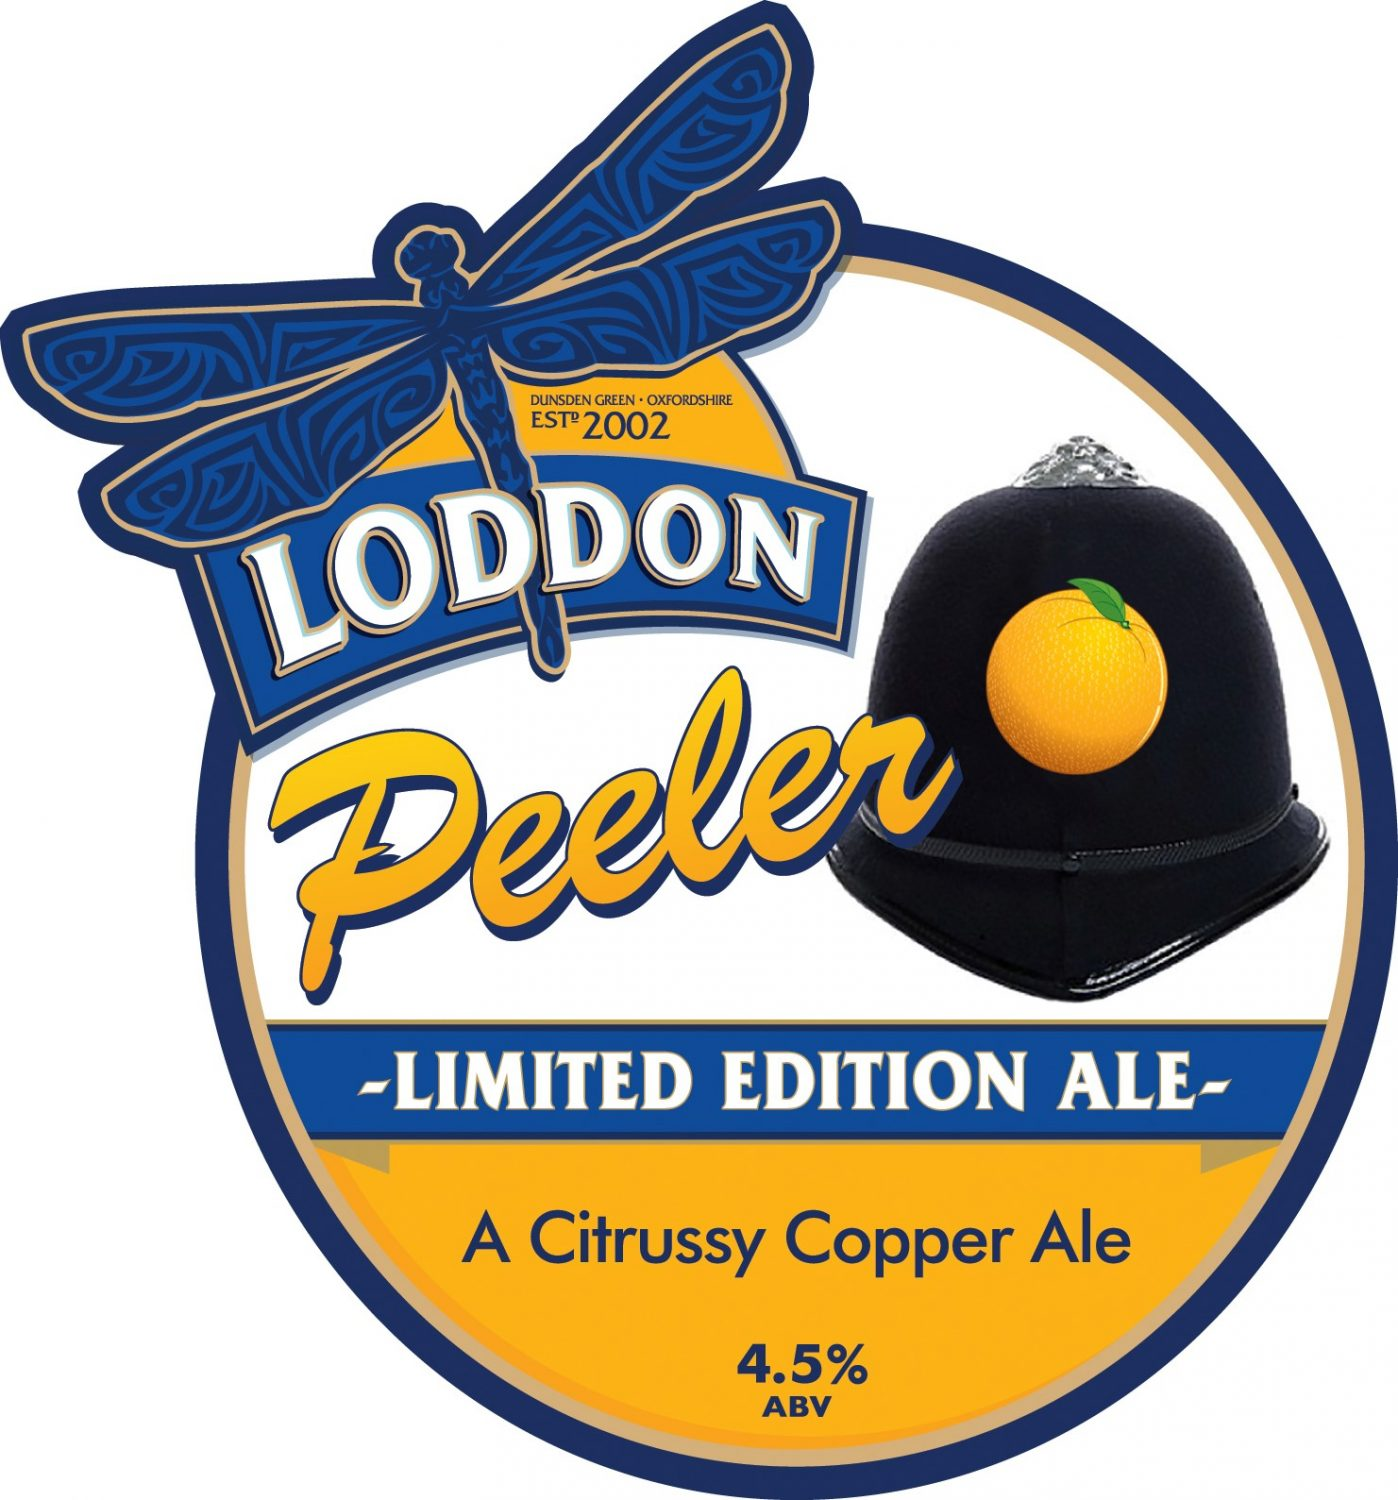 Loddon Brewery Limited Edition Ale - Peeler